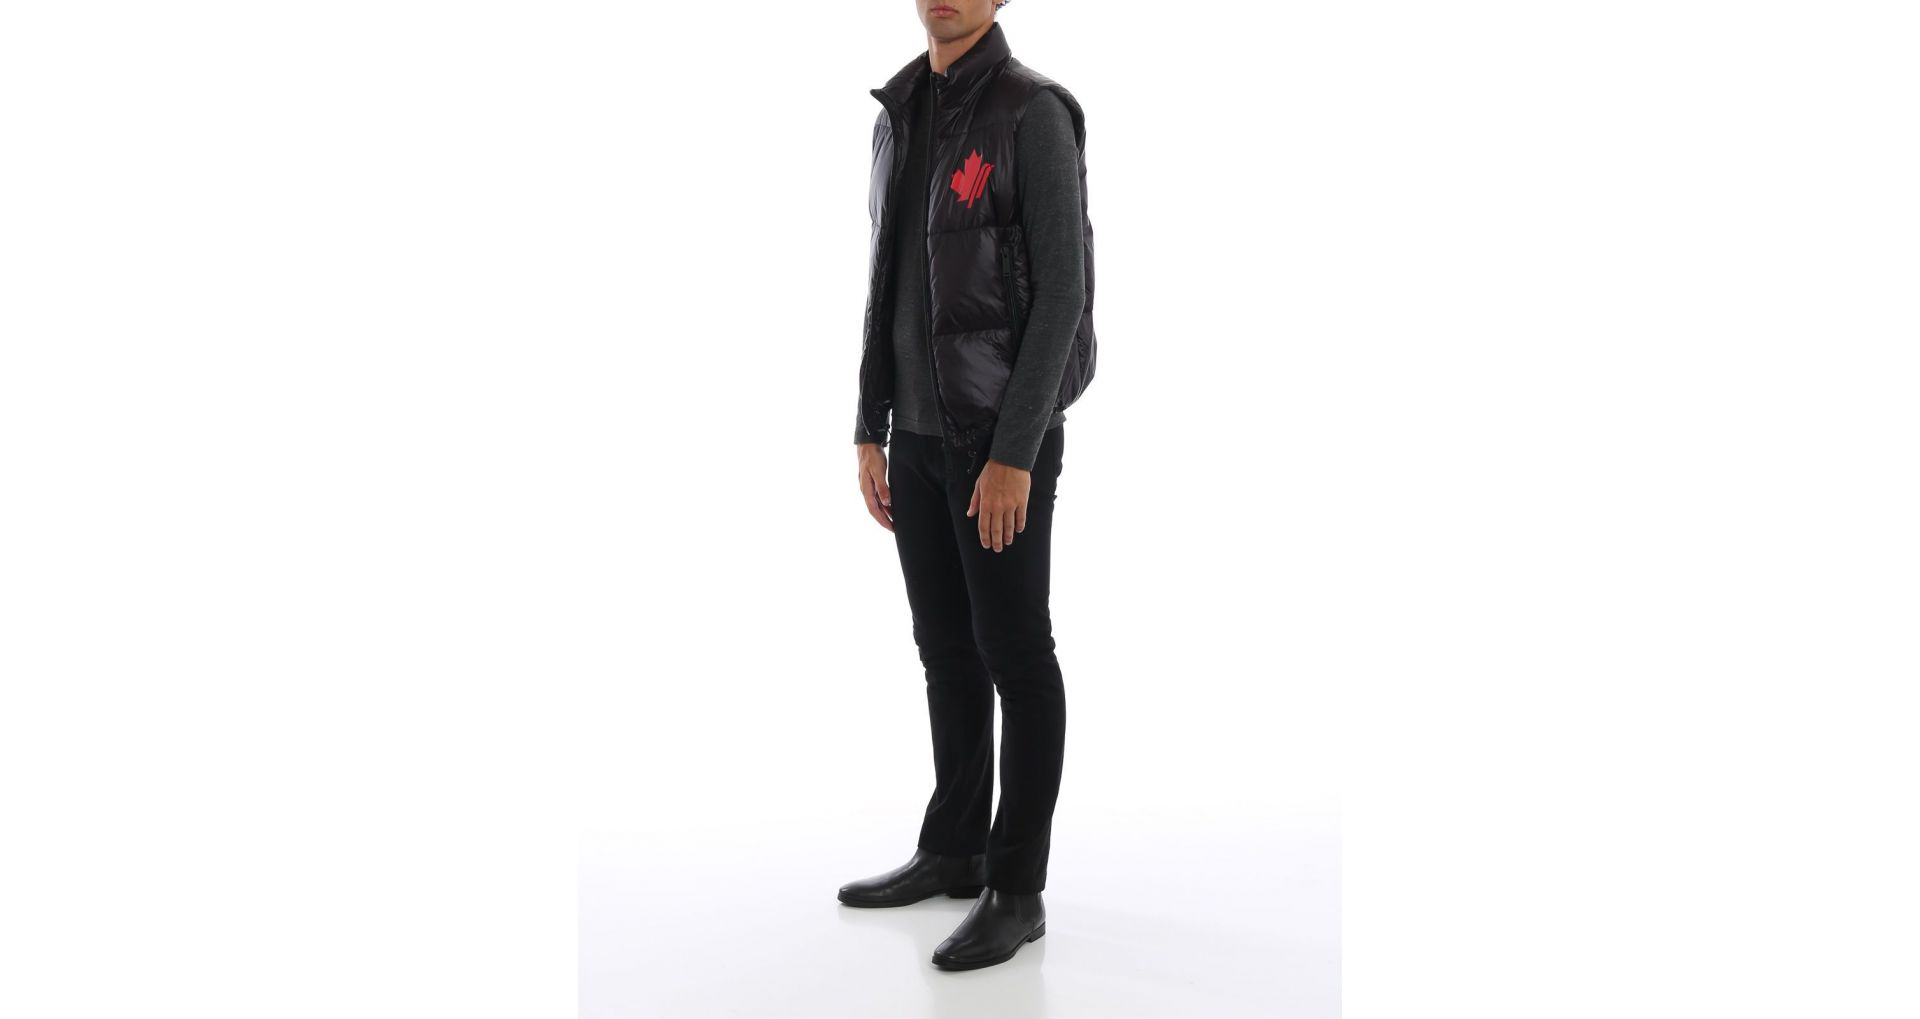 Order the latest collections of men's fashion vests